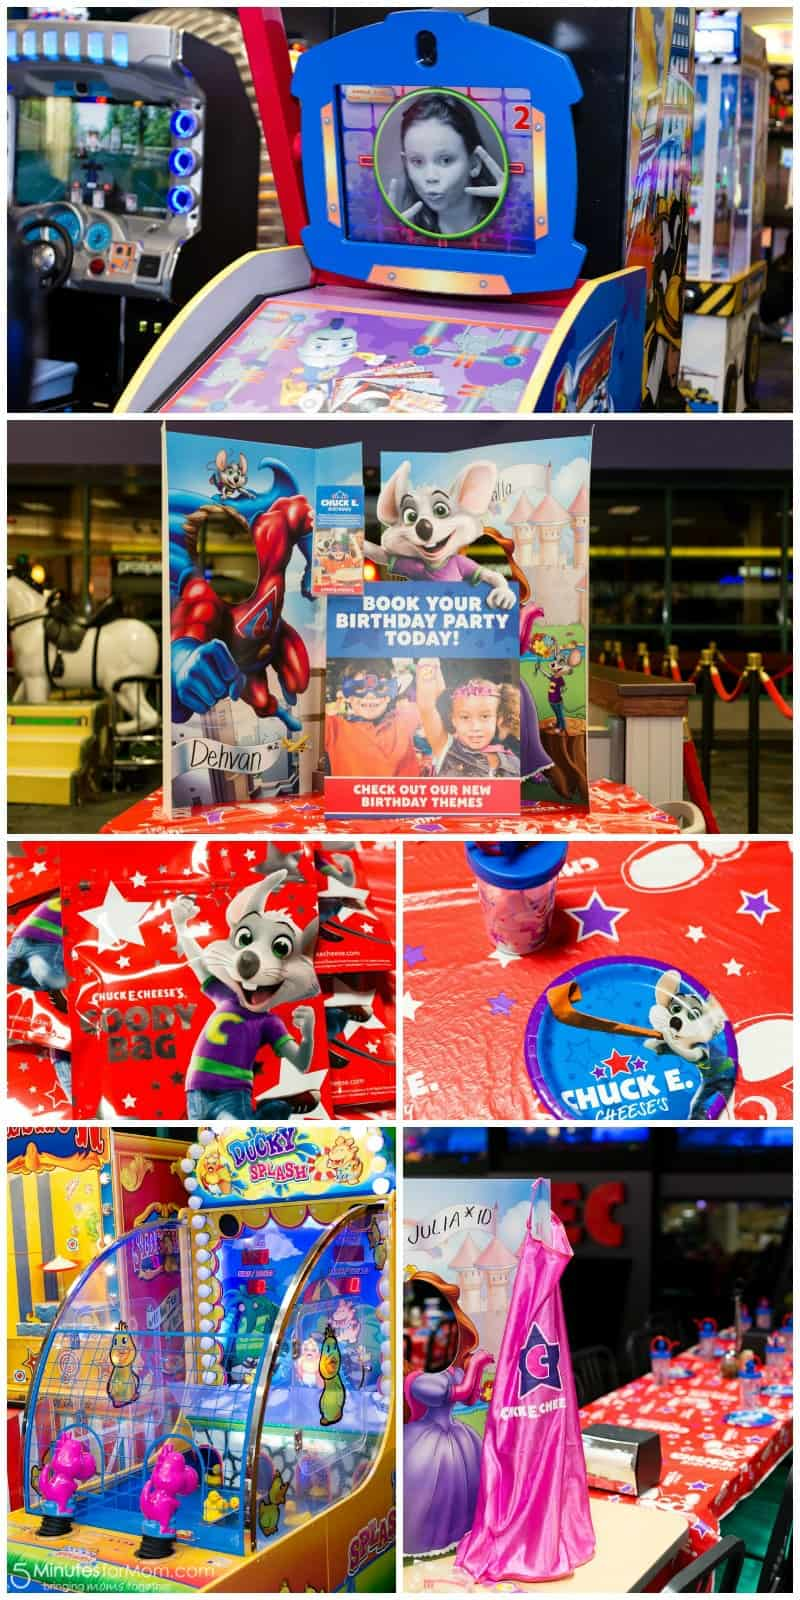 Chuck E Cheese Birthday Party Setup 5 Minutes for Mom